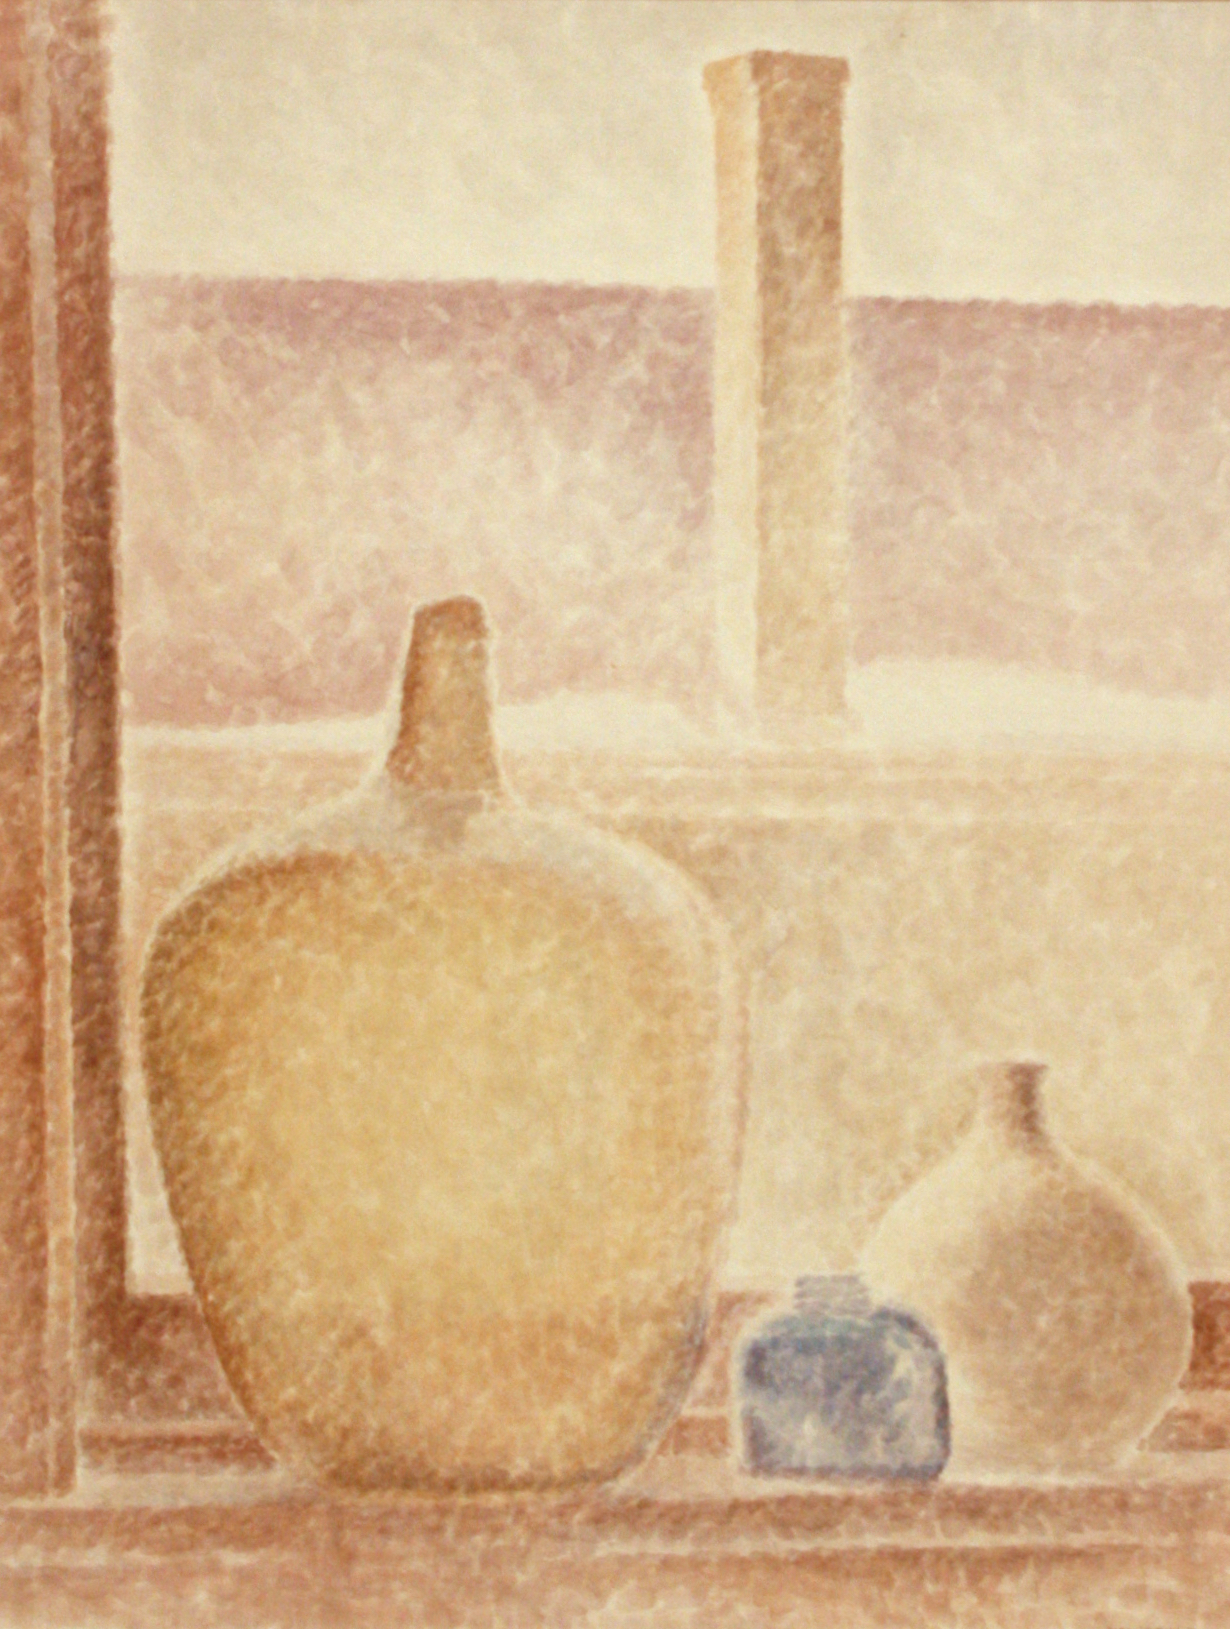 L.L. Fitzgerald<br>View from Artists Window<br>23 x 17.5<br>Watercolour<br>SOLD